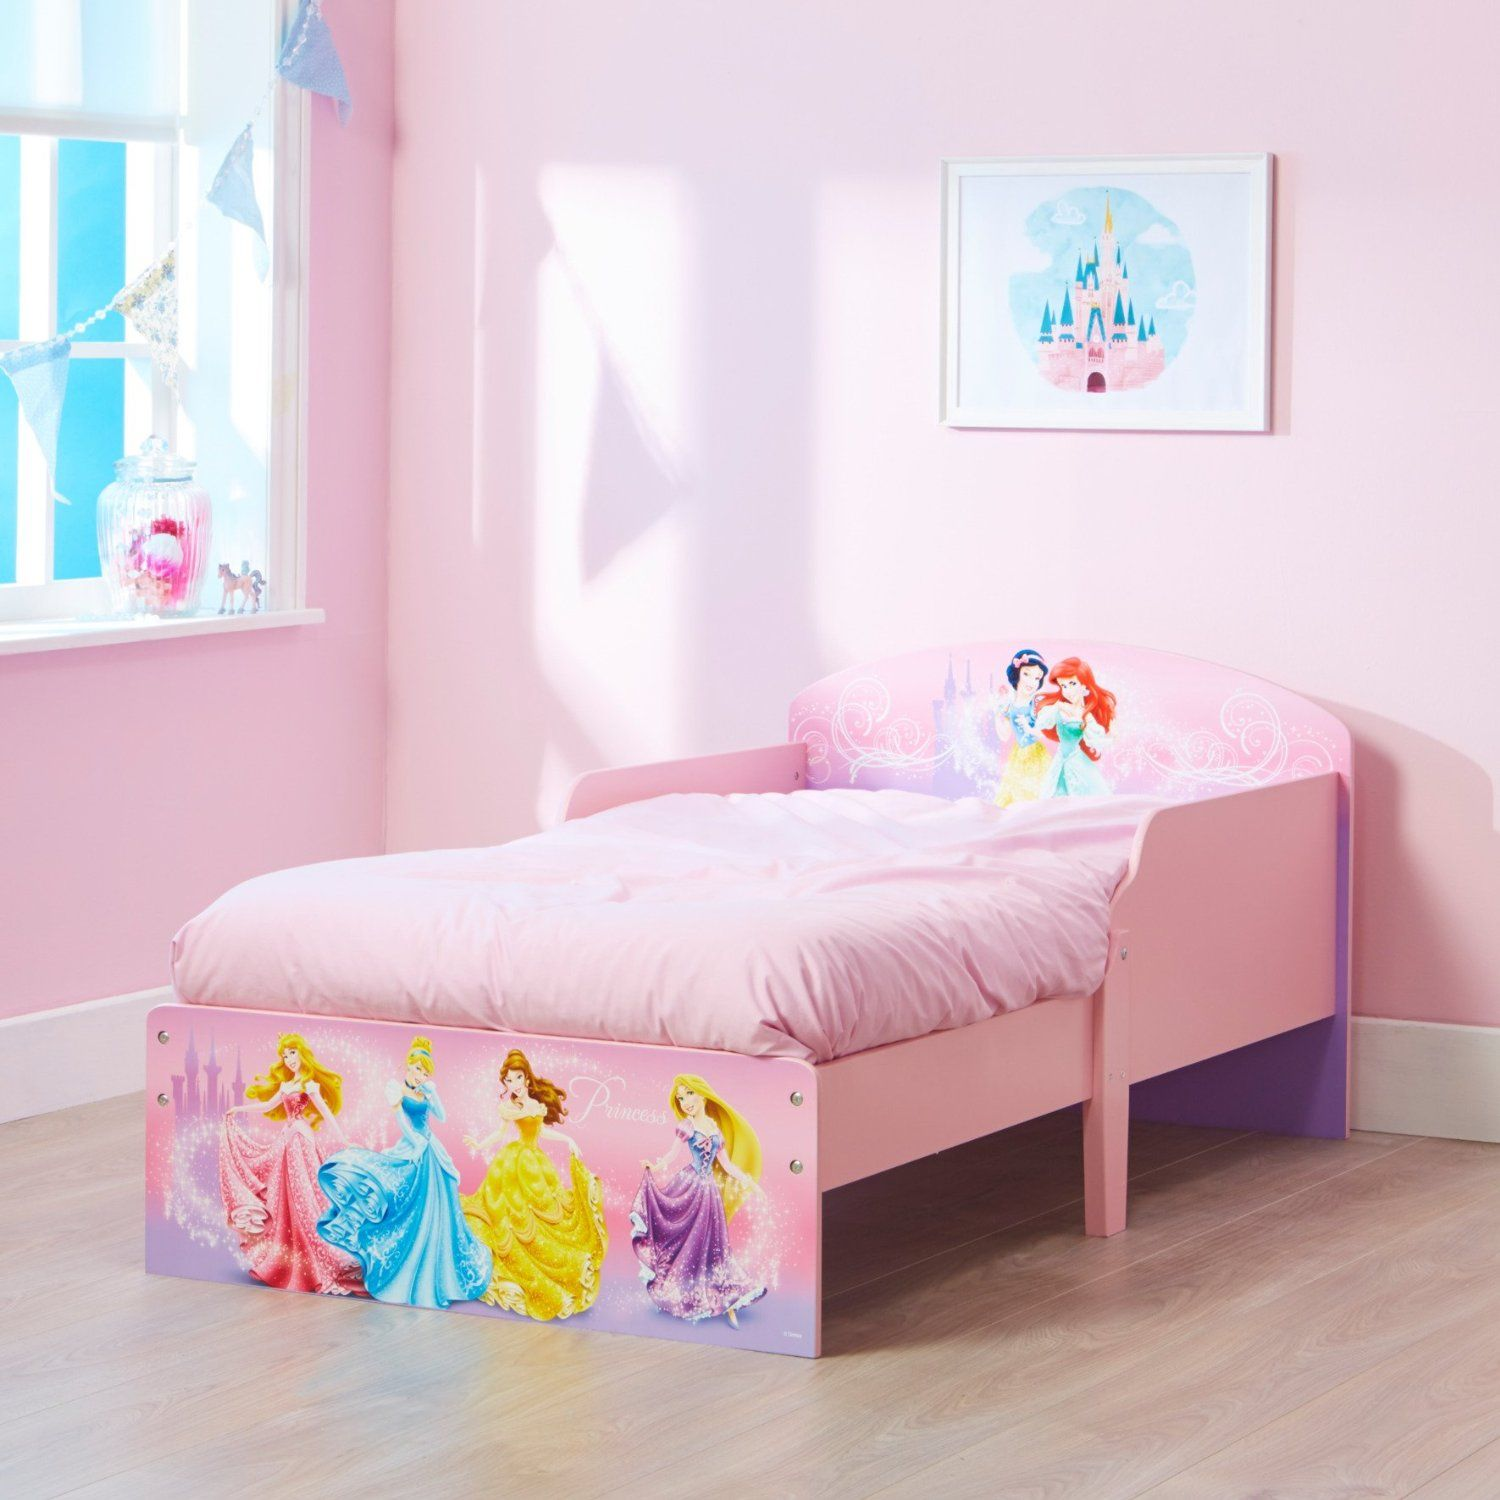 Princess Bedroom Uk Disney Princess Toddler Bed By Hellohome Amazoncouk Kitchen